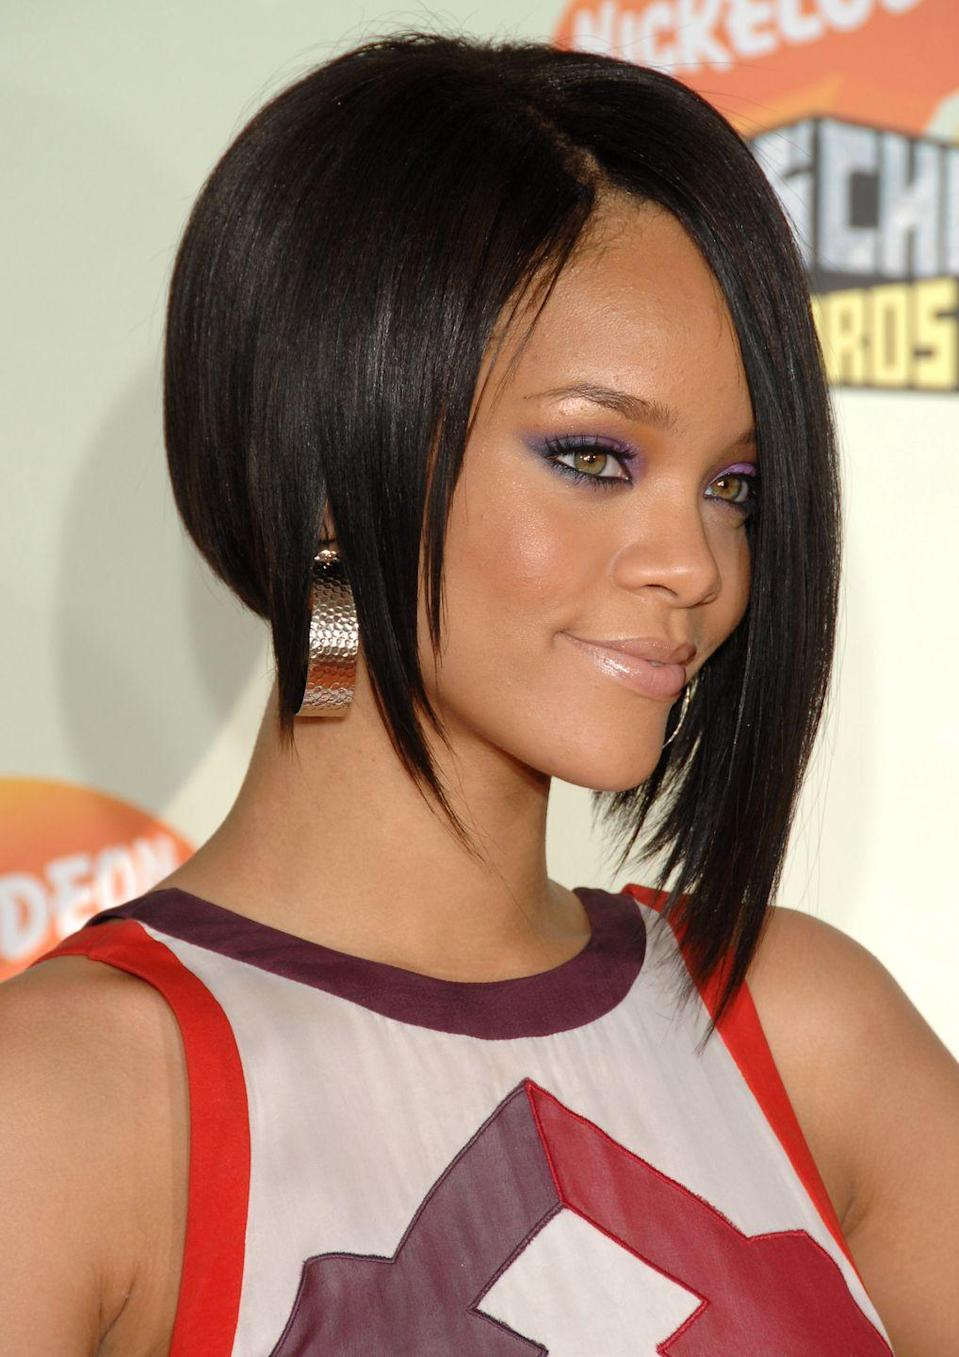 <p>For maximum impact, try singer <strong>Rihanna's</strong> cut, which features sharp pieces falling towards the front of her face on both sides. It can also be done with an undercut to make it extra edgy.</p>